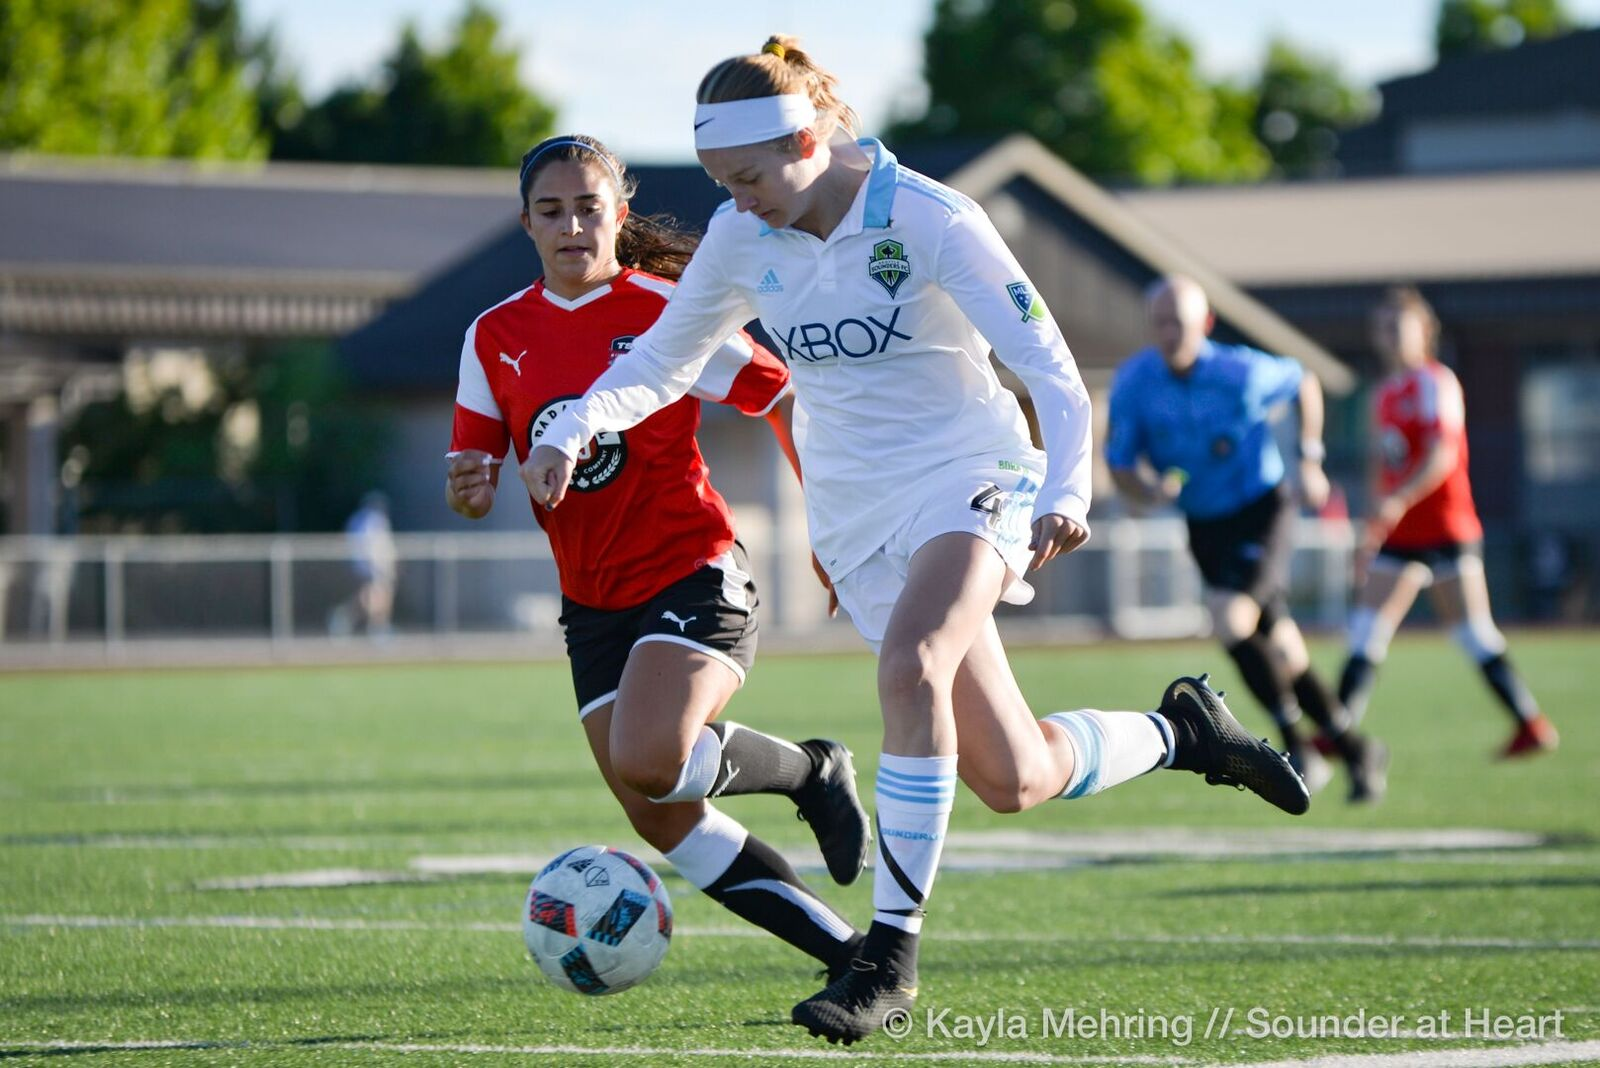 The Sounders Women beat TSS Rovers, go undefeated into West Regional